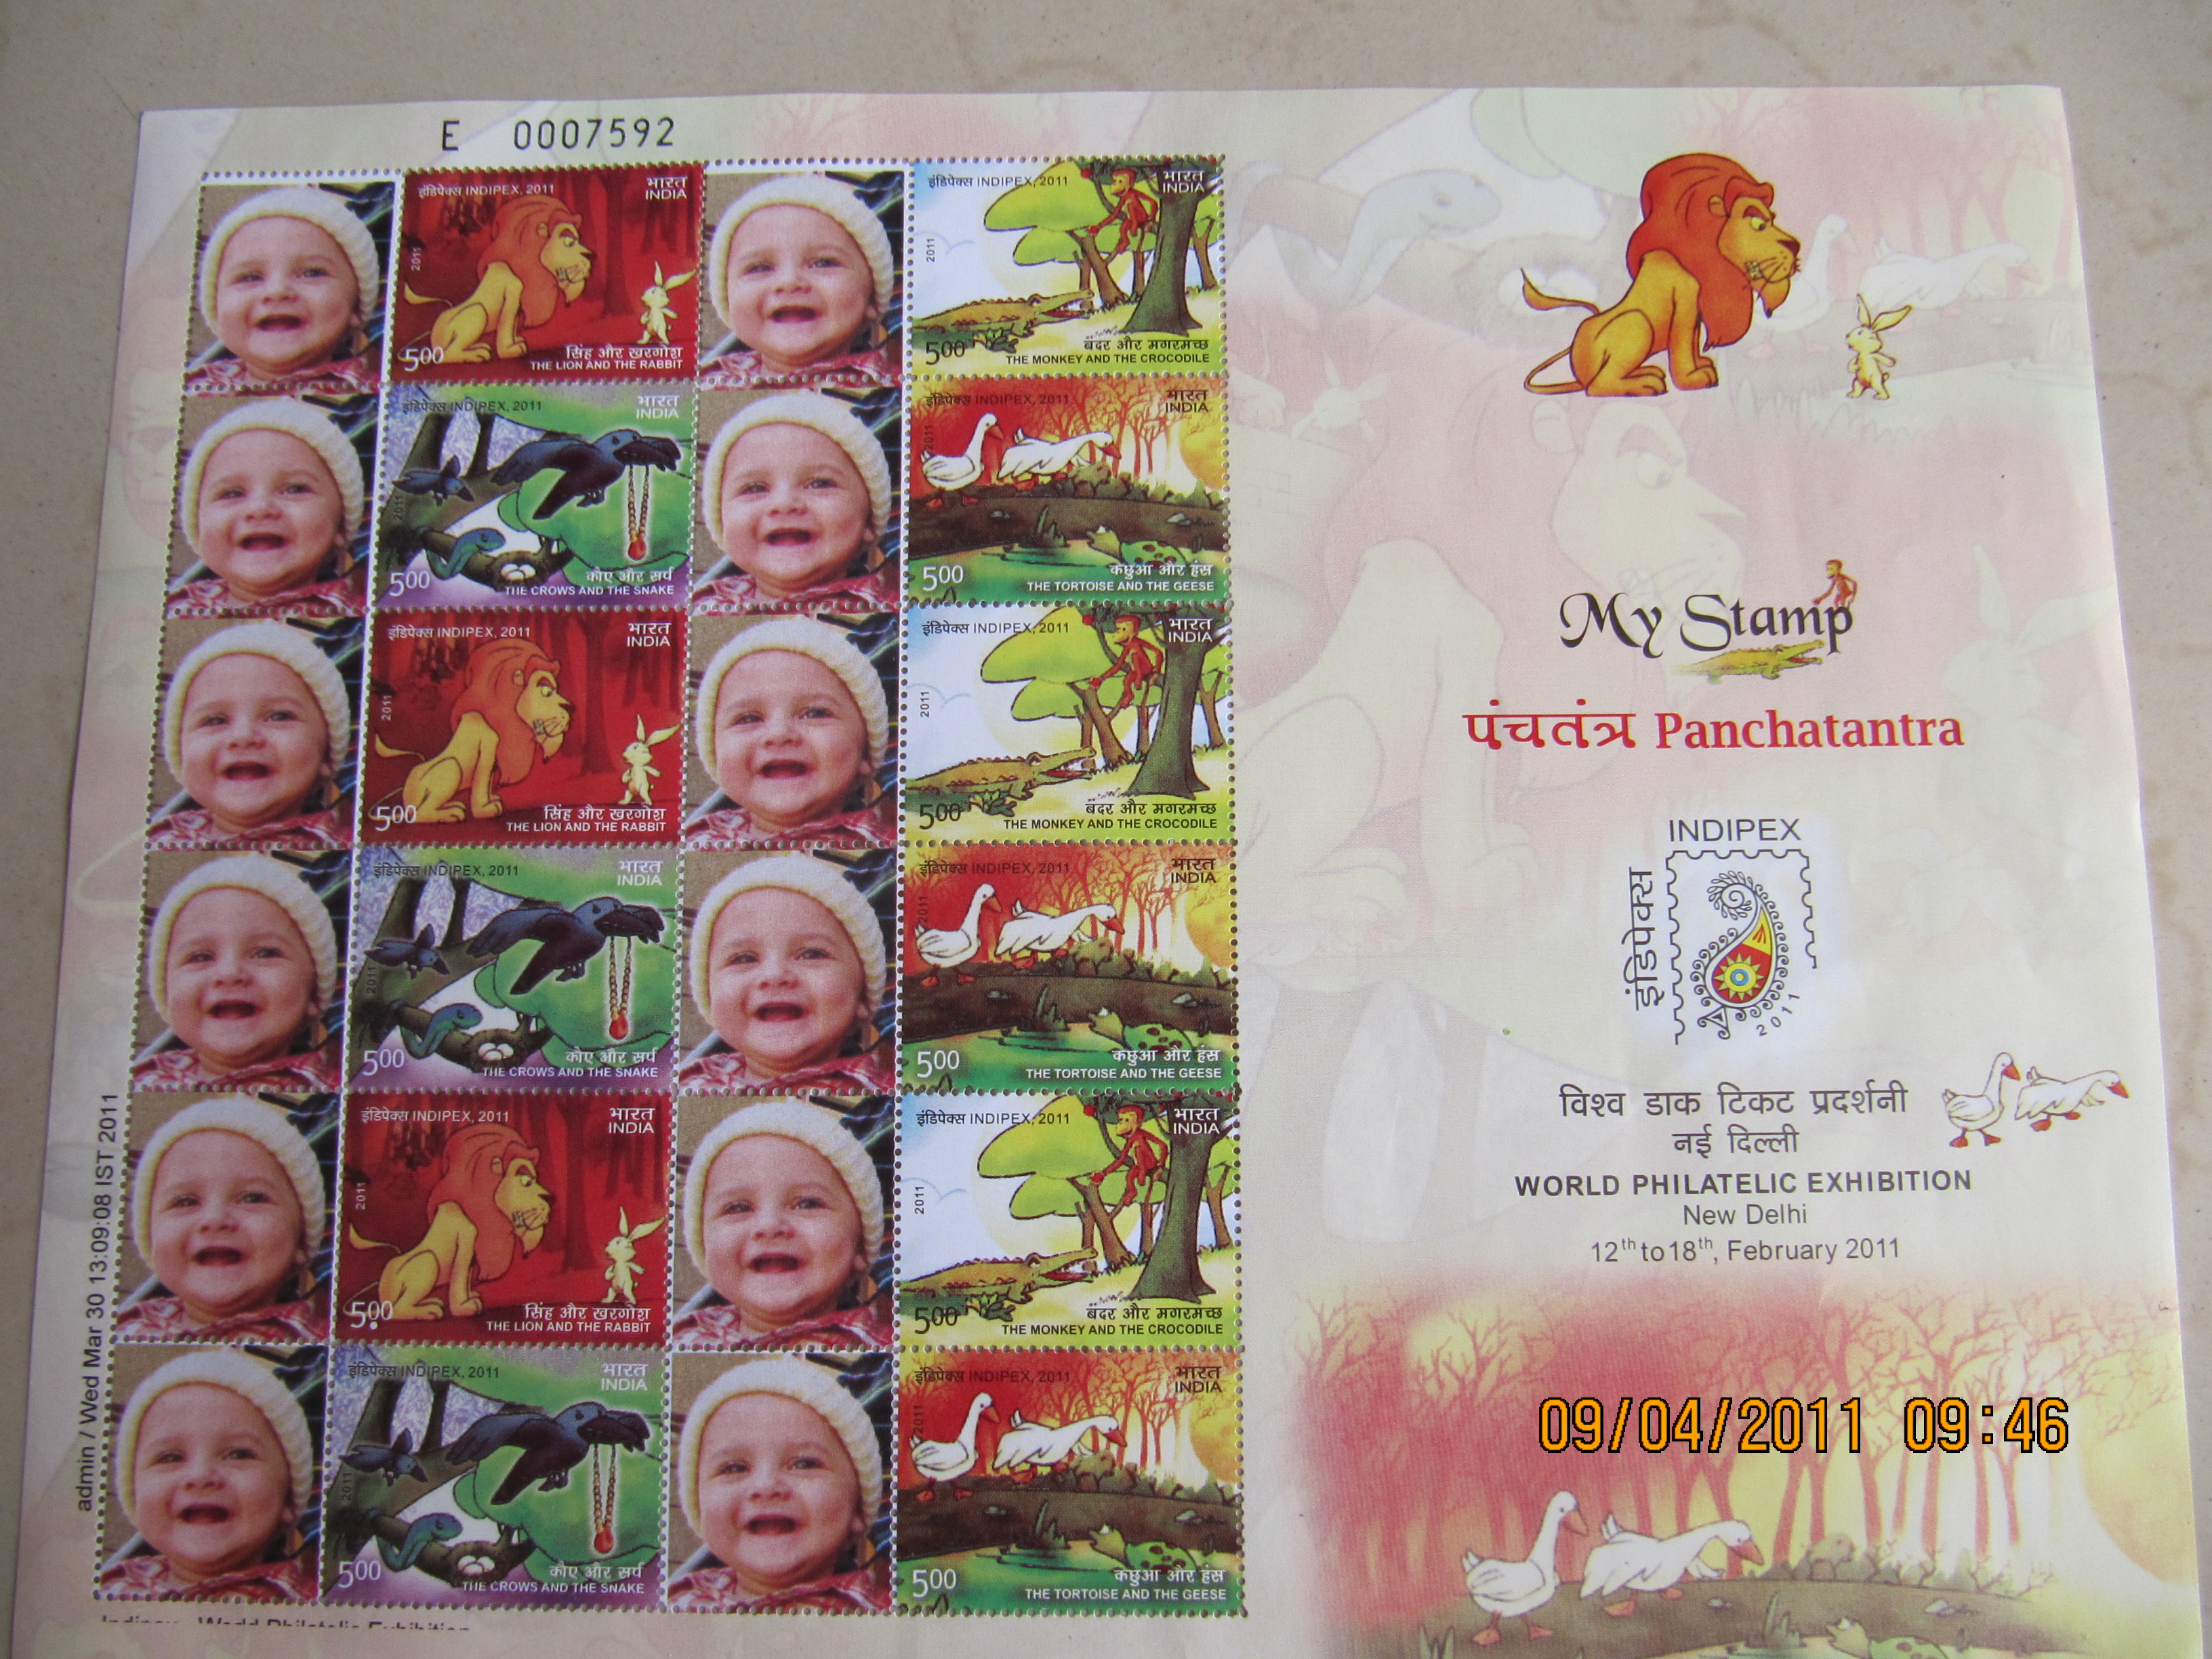 My Stamp - Panchatantra - Indipex 2011